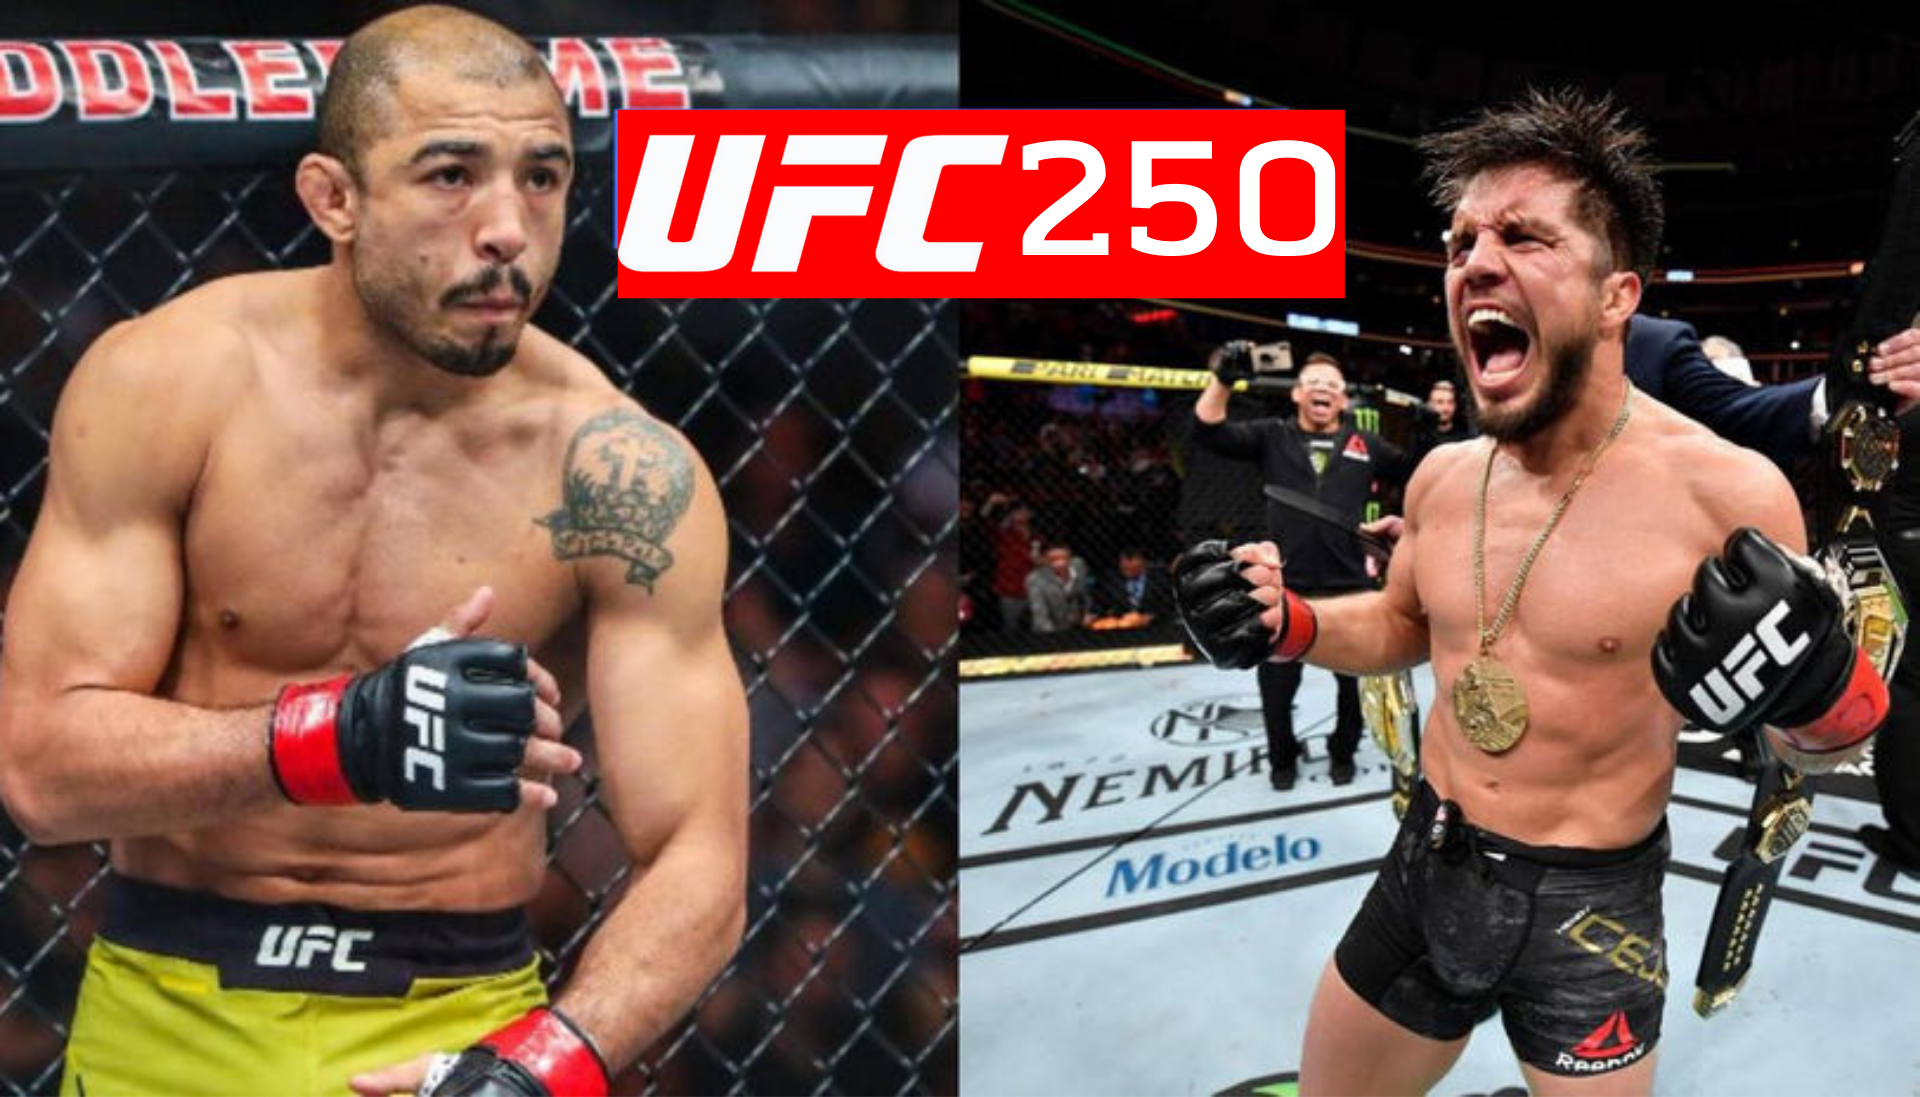 Henry Cejudo vs Jose Aldo targeted for UFC 250 - Cejudo